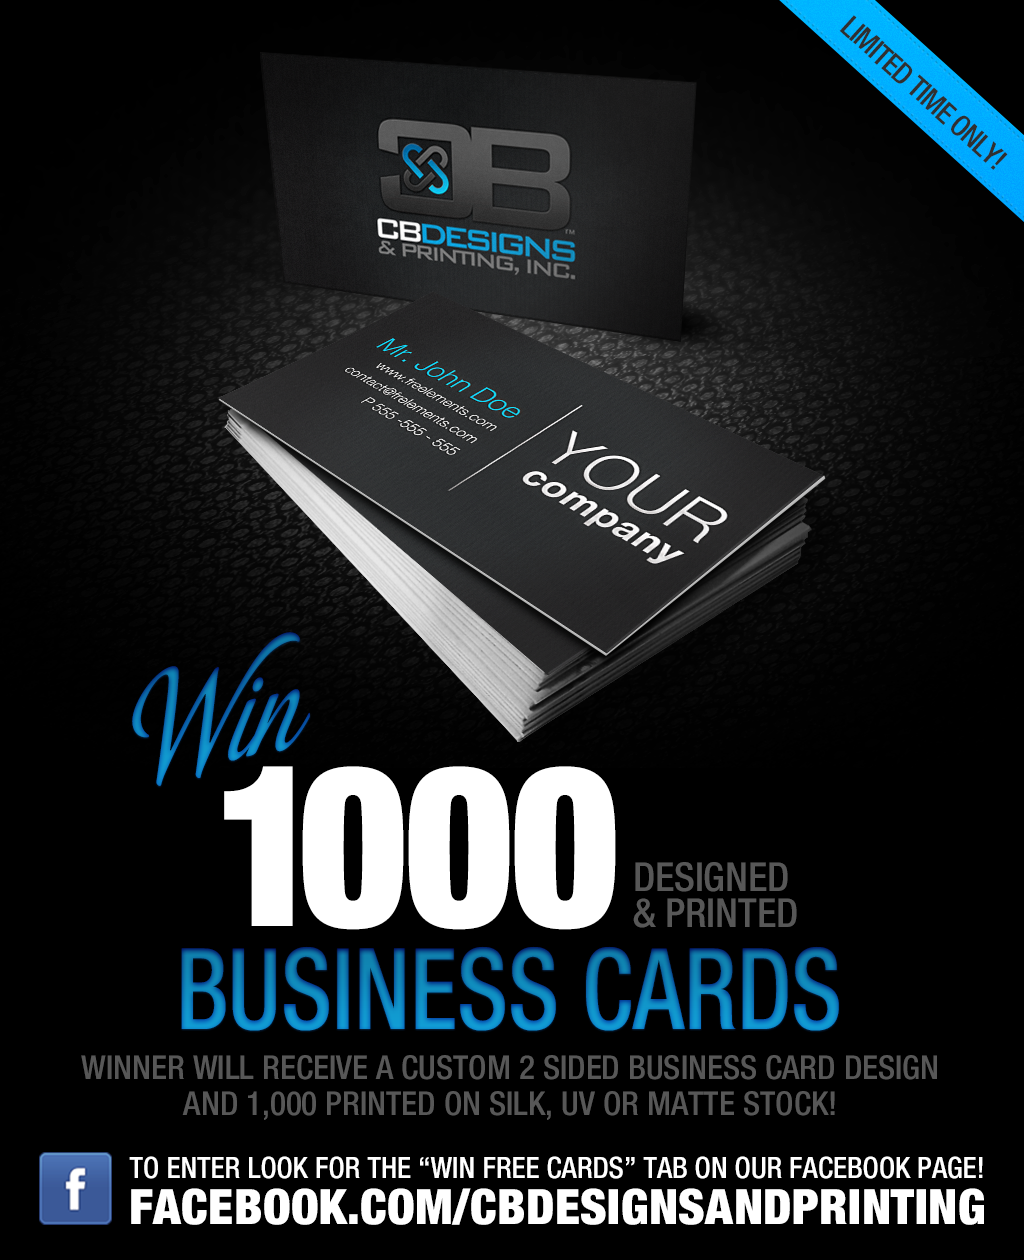 Alright the wait is over! Enter to win 1000 Business Cards, Designed ...